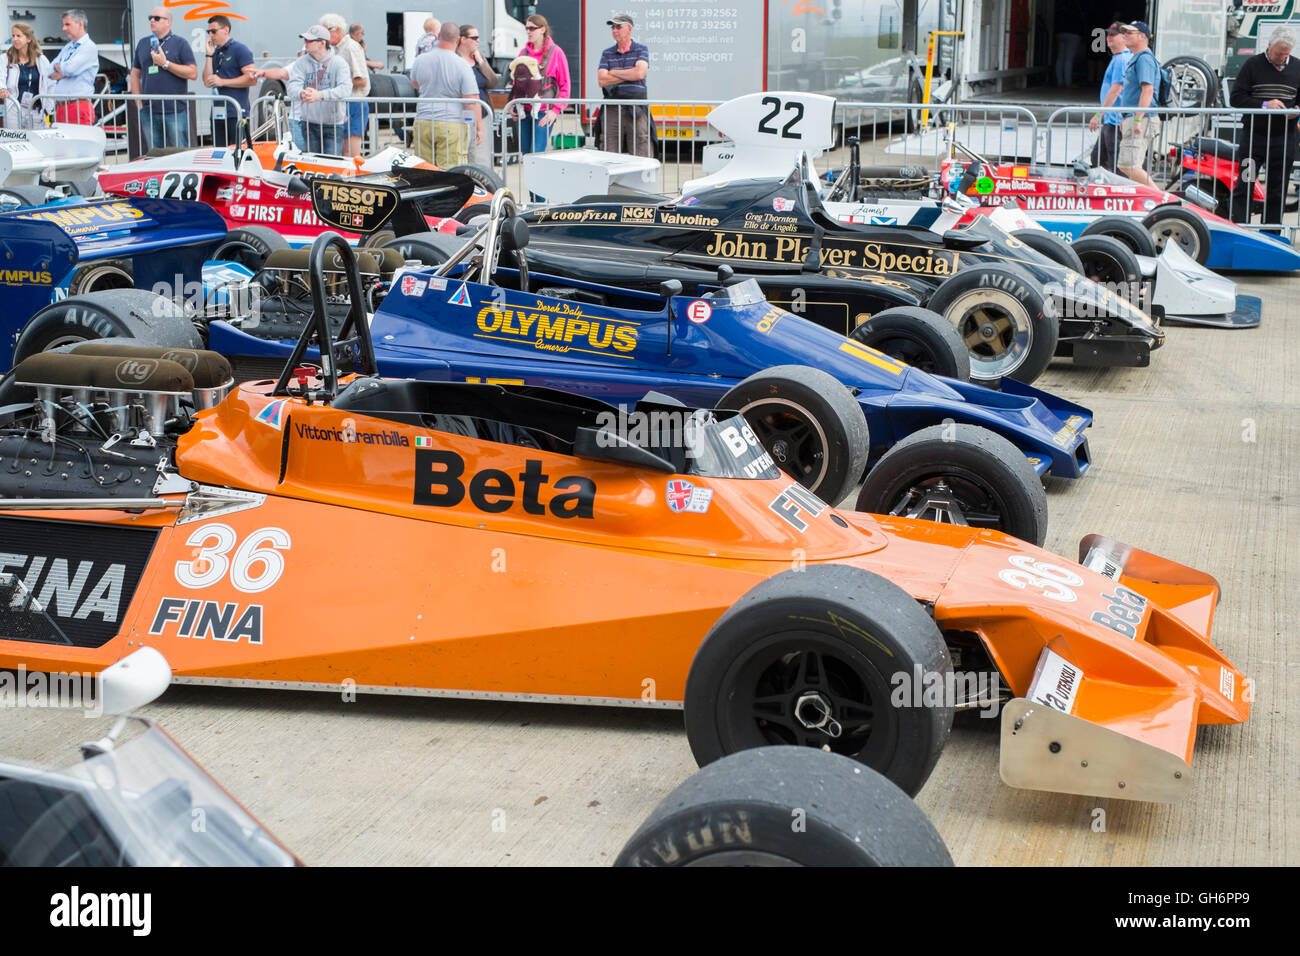 FIA Masters Historic Formula 1 cars in the paddock, 2016 Silverstone Classic event, UK - Stock Image